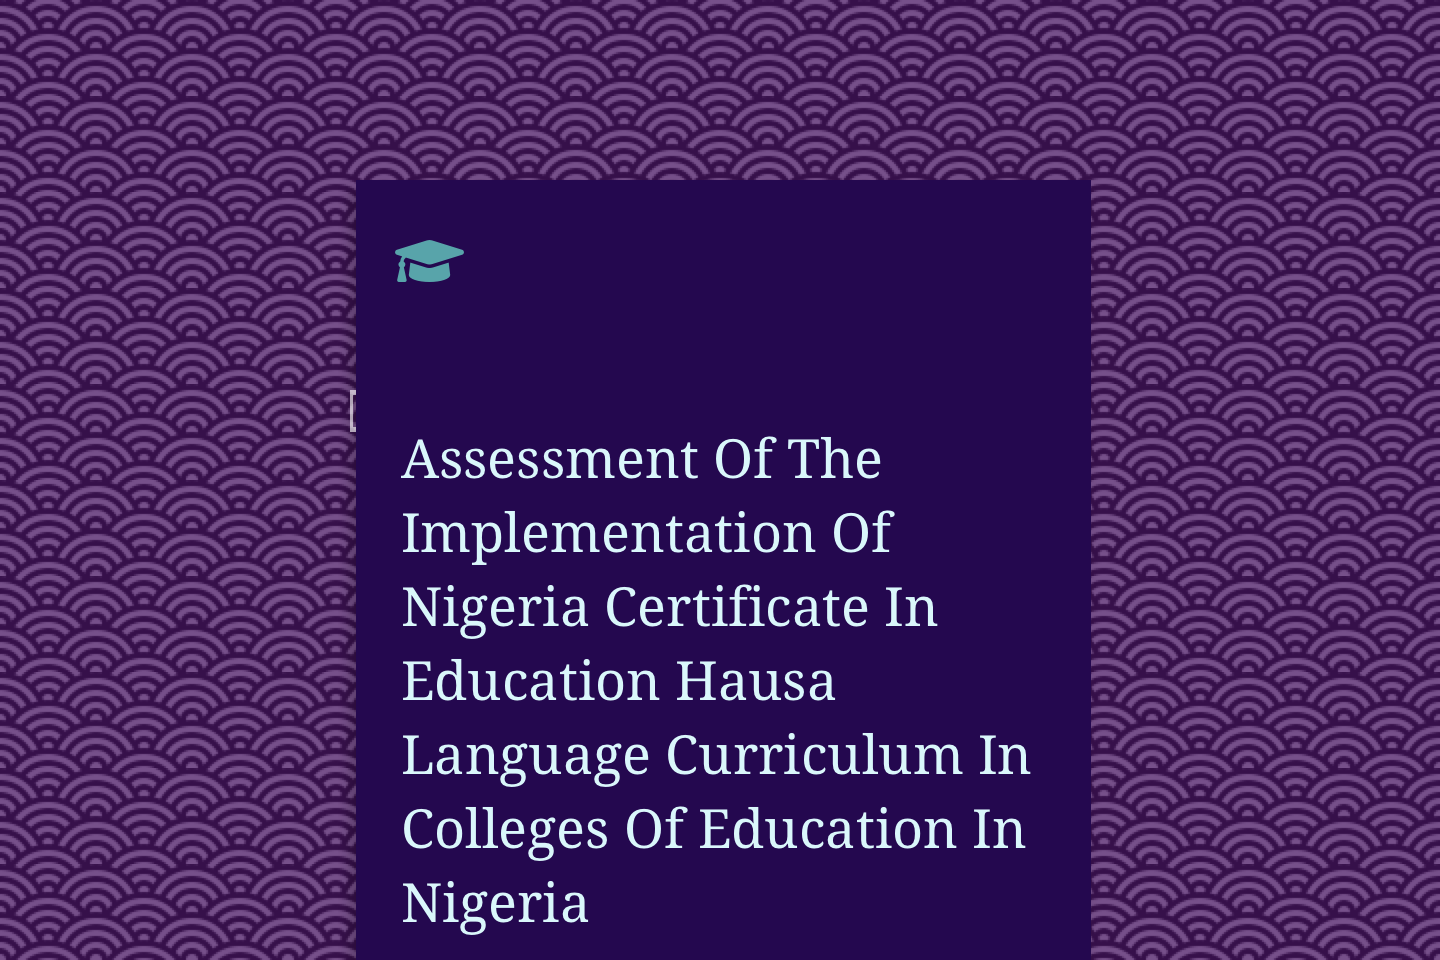 Assessment Of The Implementation Of Nigeria Certificate In Education Hausa Language Curriculum In Colleges Of Education In Nigeria